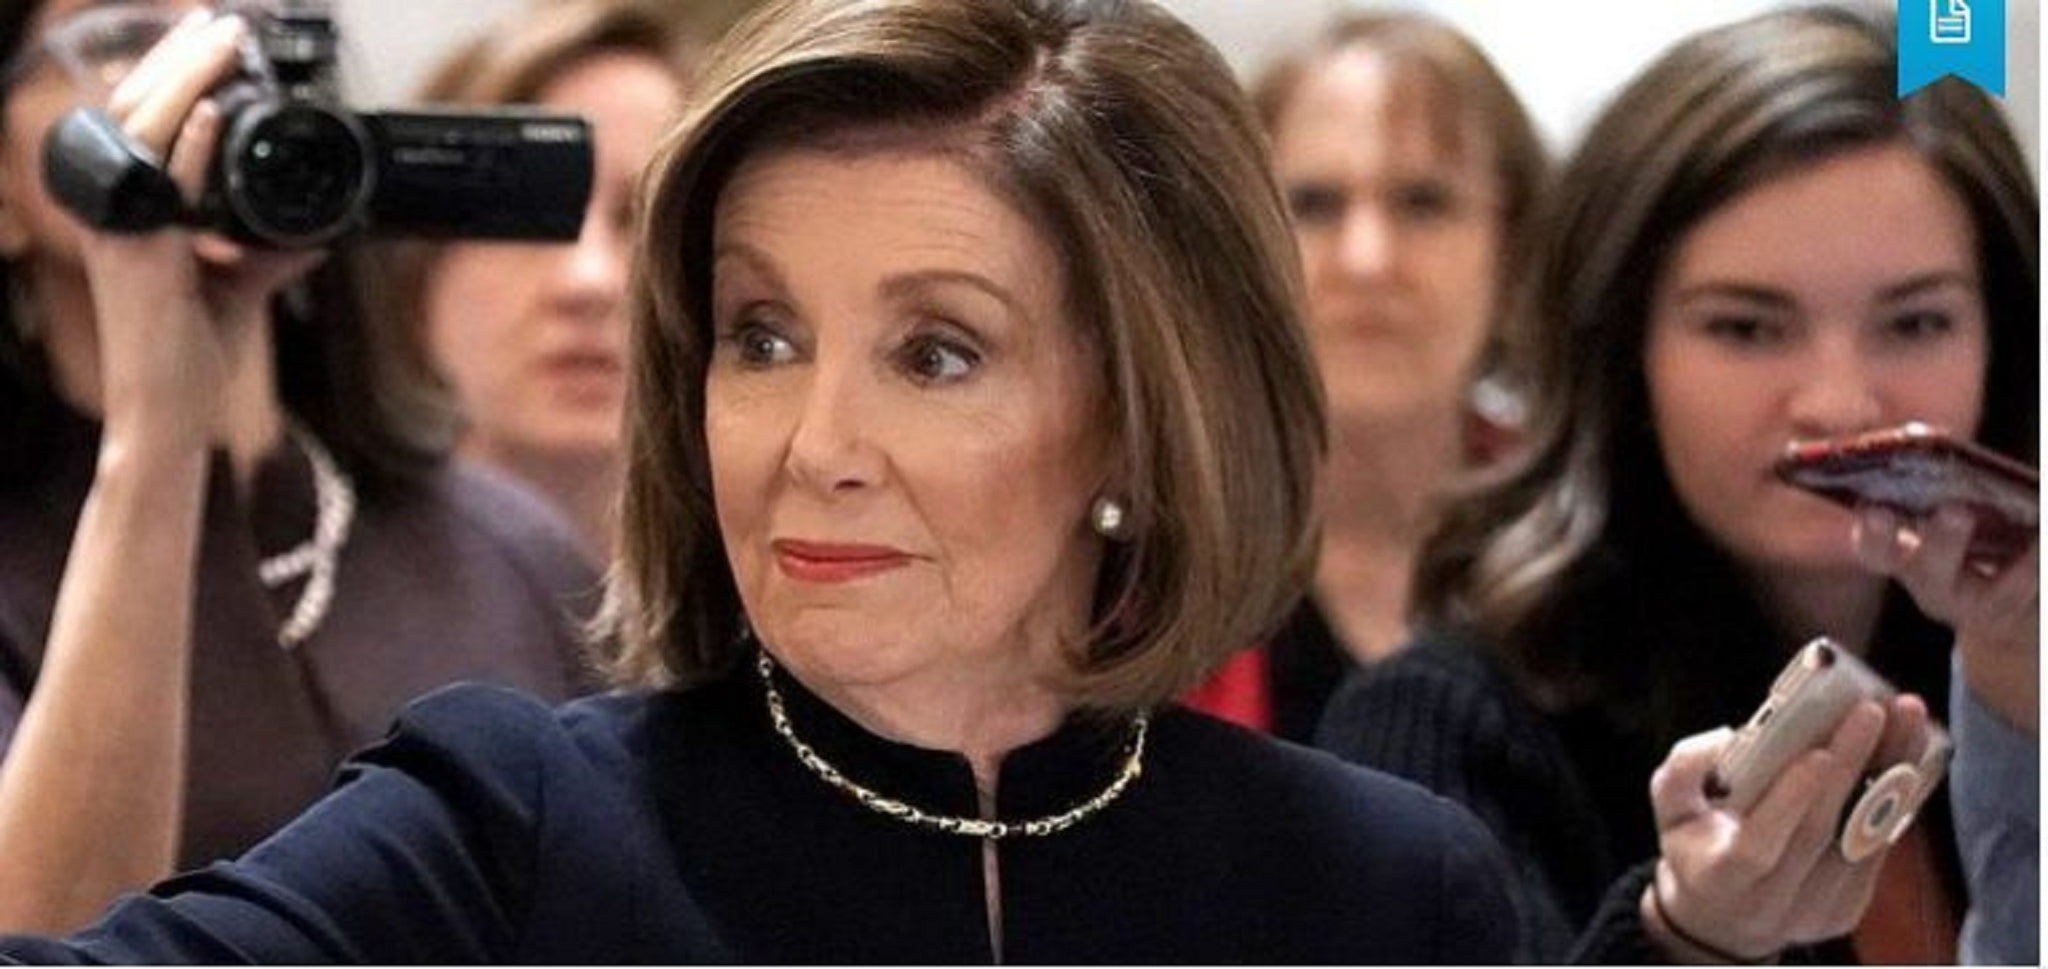 Nancy Pelosi's 4th Husband Files for Divorce: 'I just Can't Take It Anymore'. Do you support this?